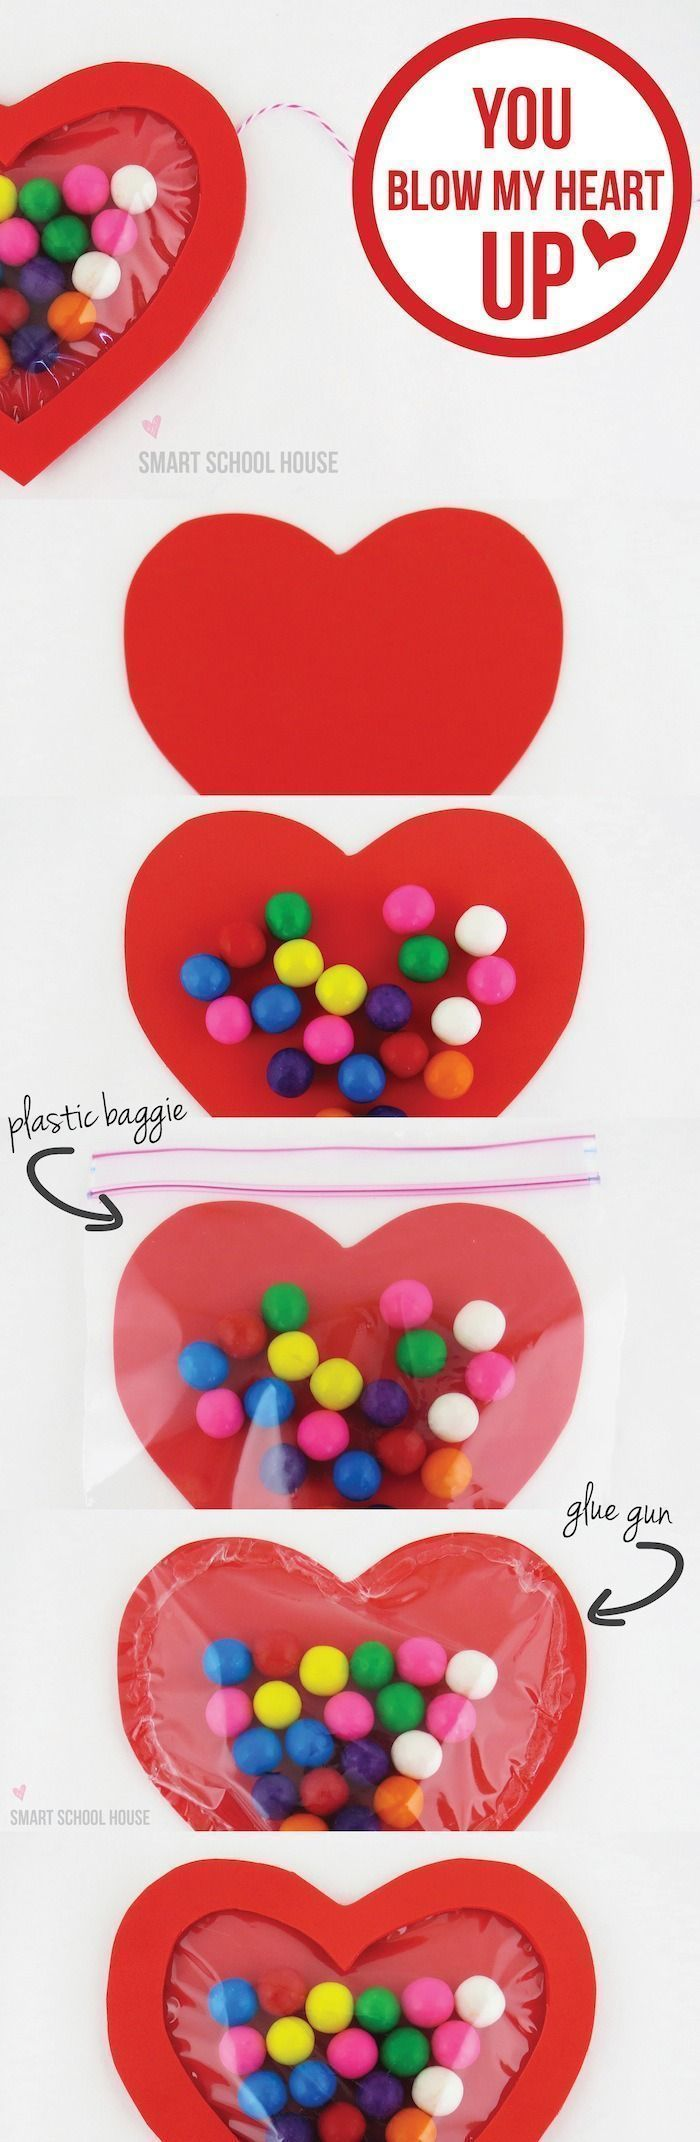 BLOW MY HEART UP  Bubble Gum Valentine Craft & free printable. The newest and funnest Valentine craft idea for kids! #DIY #ValentinesDay #Crafts